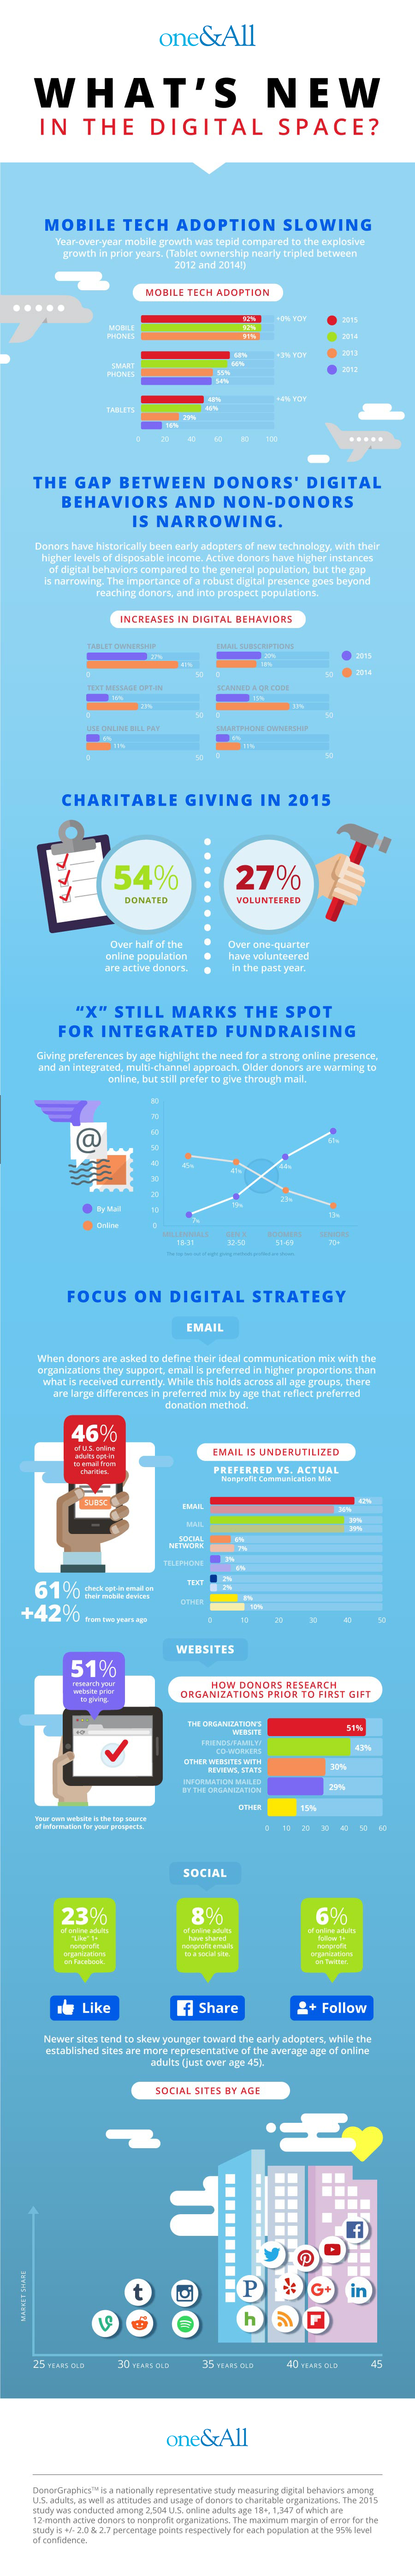 The Digital Space Infographic